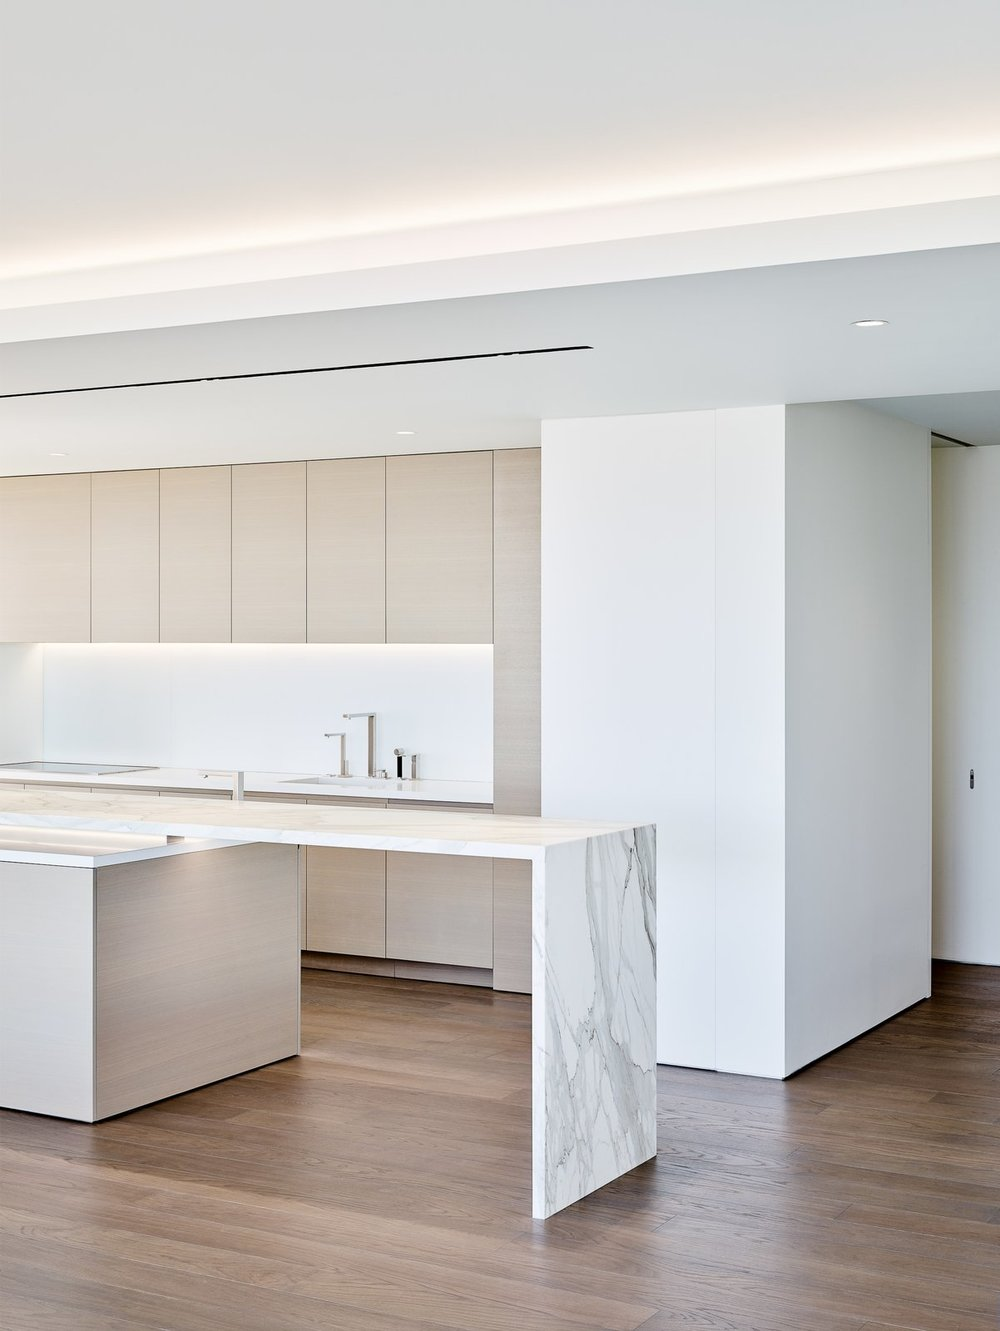 The crisp white kitchen features appliances built into the cabinetry and marble countertops.  Photo: Joe Fletcher